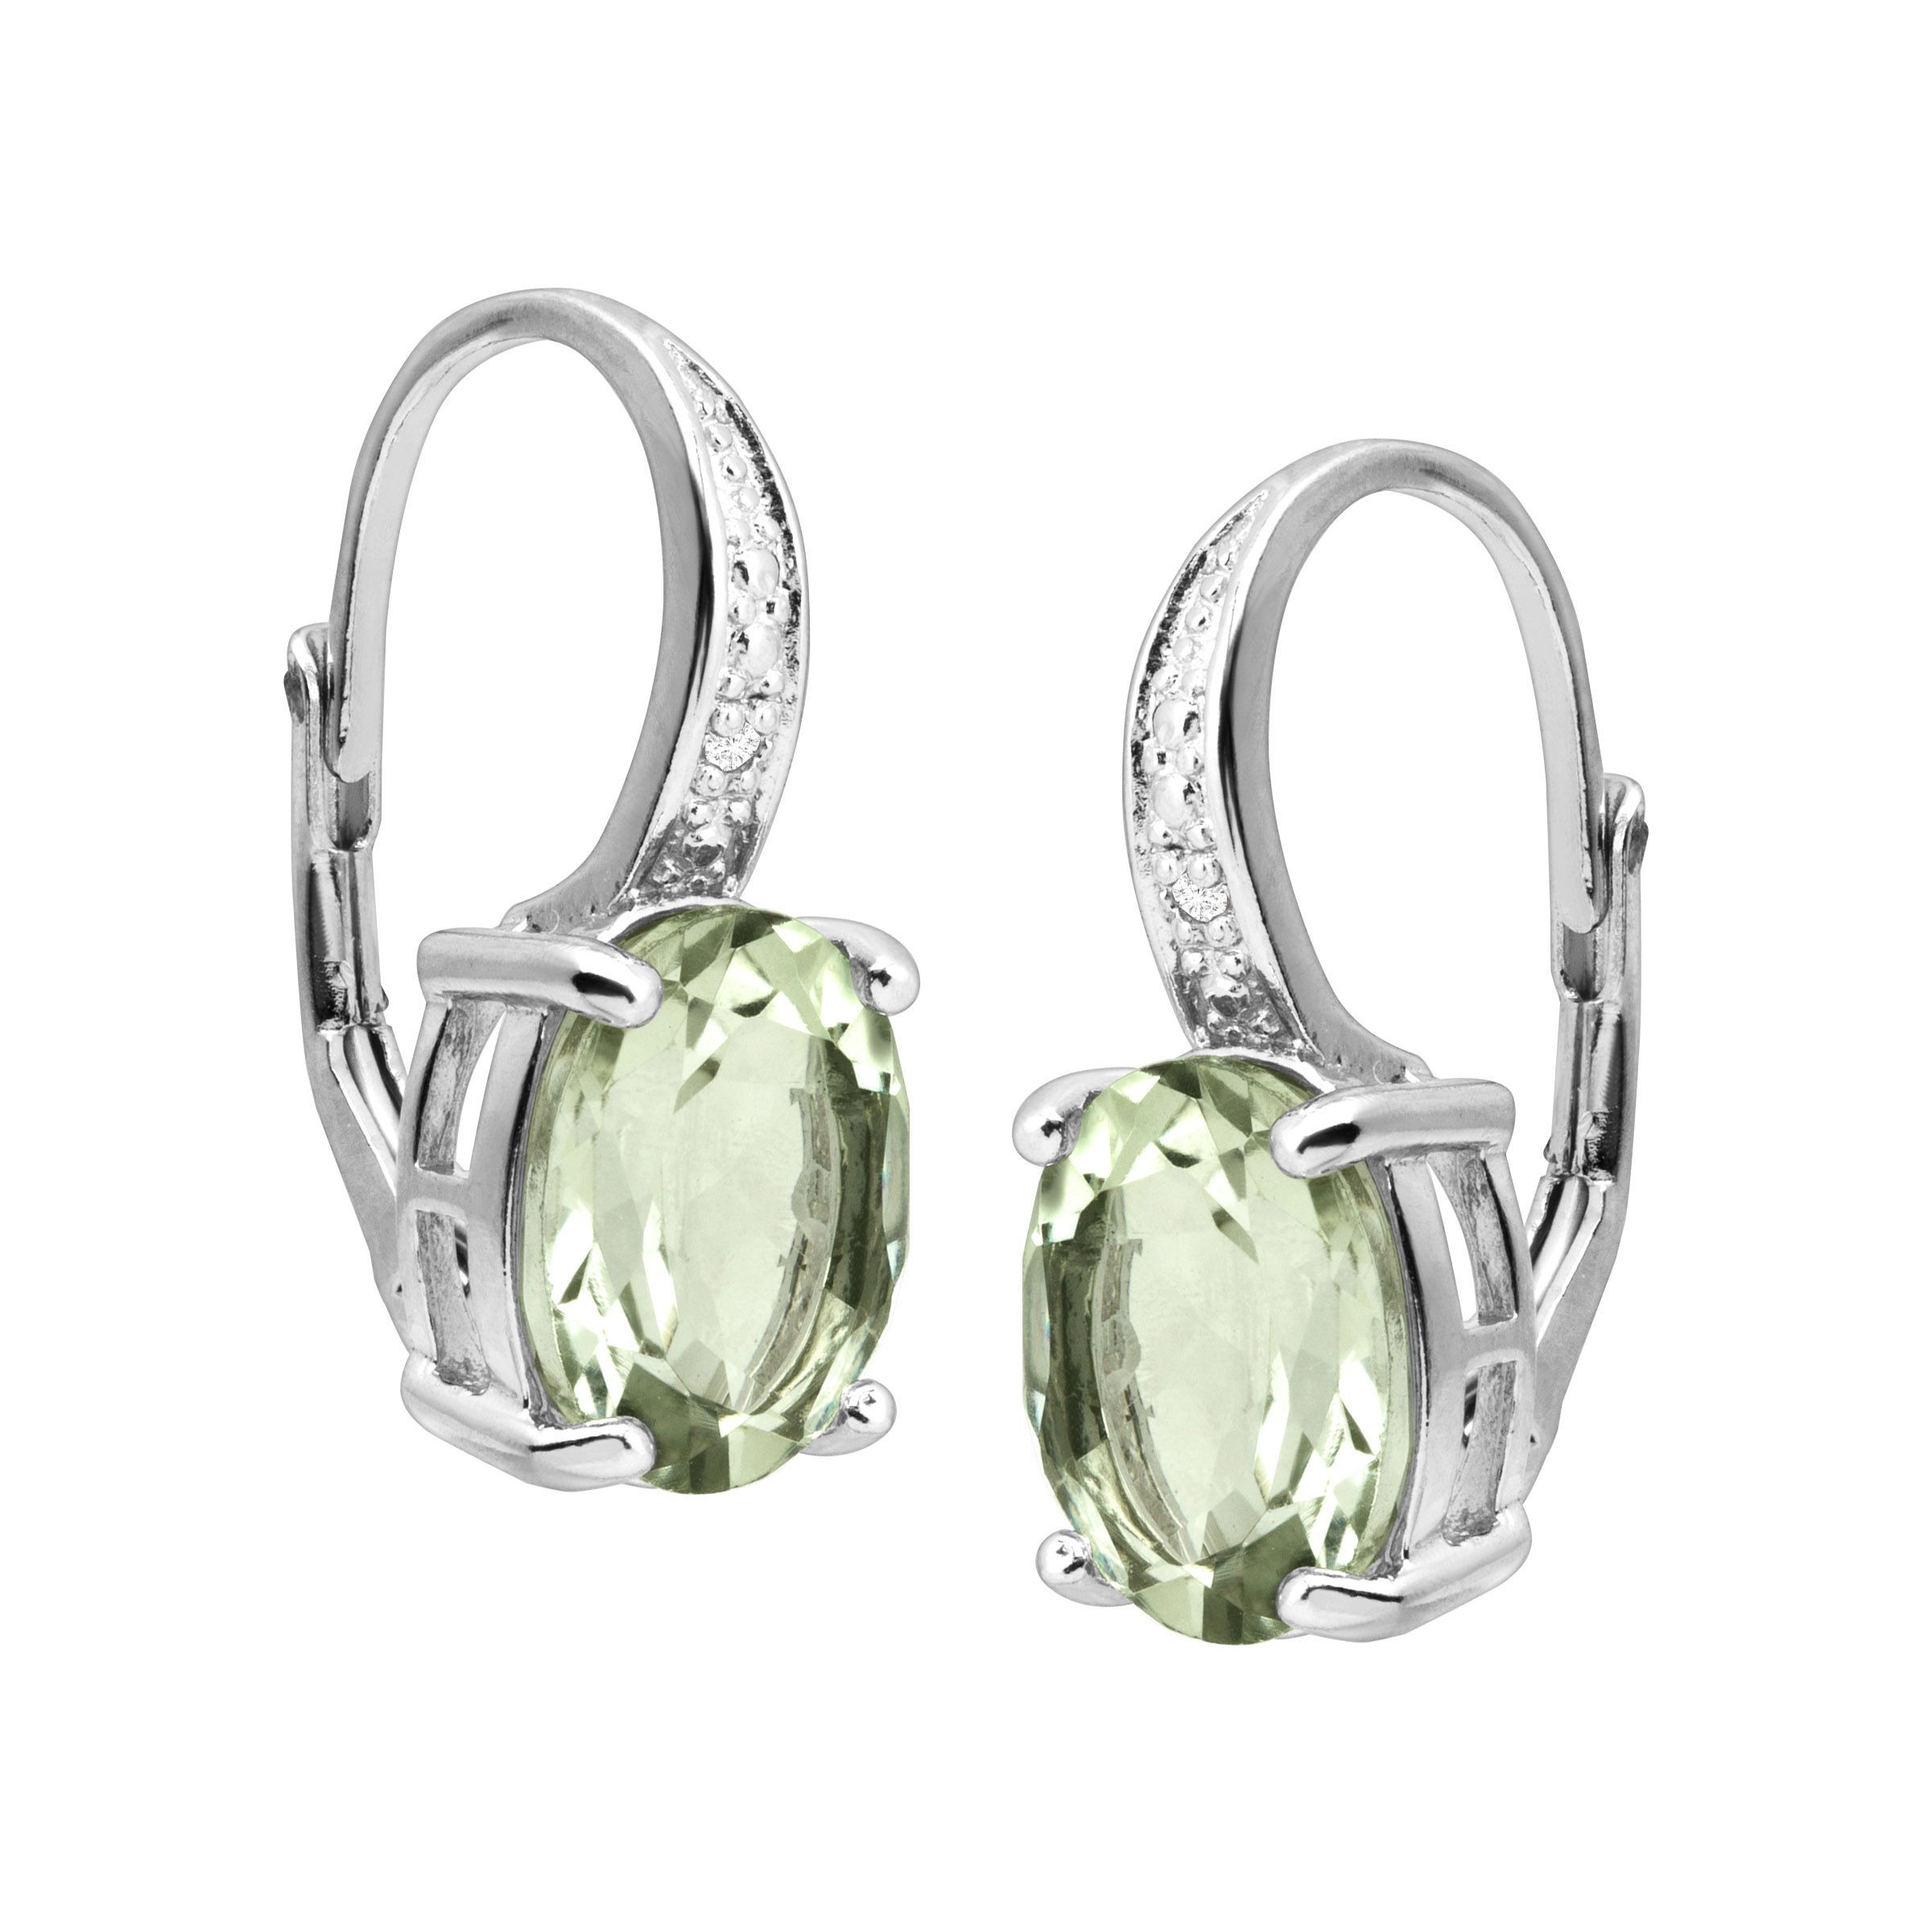 Natural-Gemstone-Drop-Earrings-with-Diamonds-in-Sterling-Silver thumbnail 30